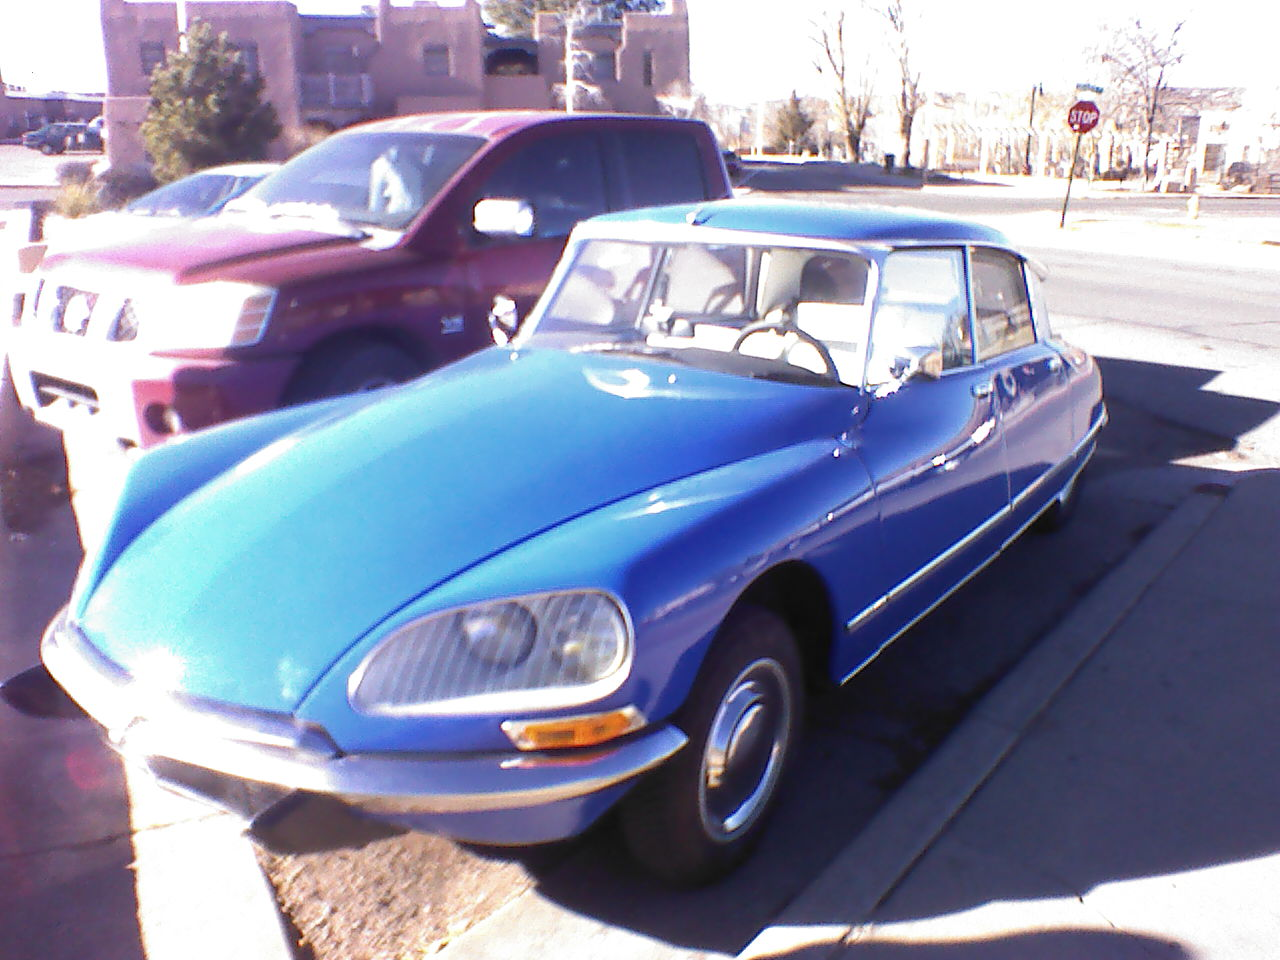 Beautiful old Citroen DS downtown